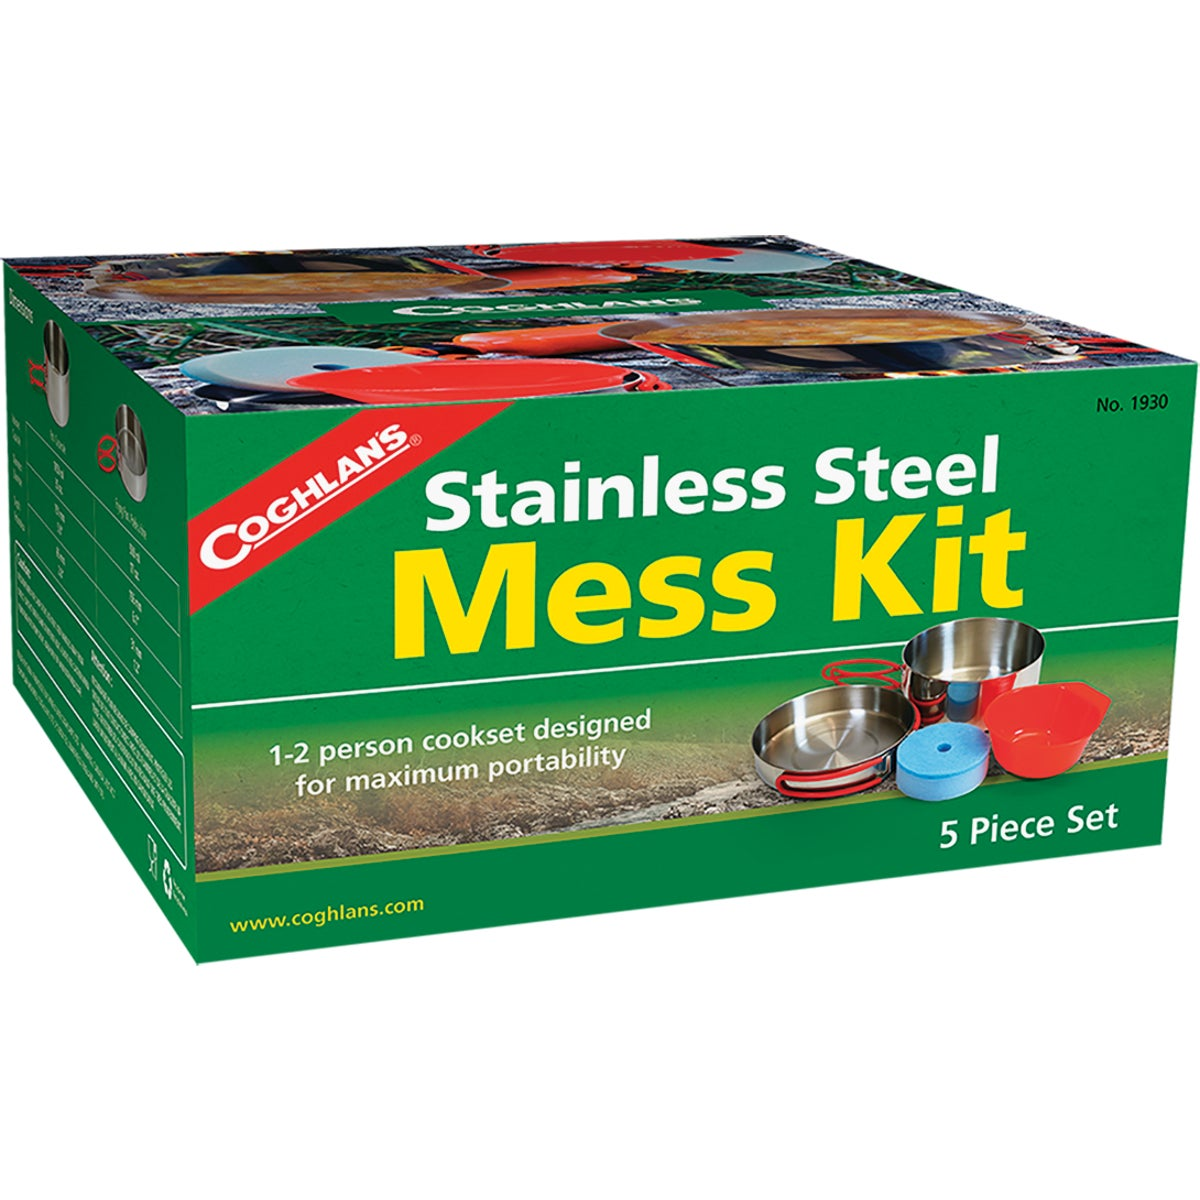 5PC MESS KIT W/COVER - 50020 by Academy Broadway Cor